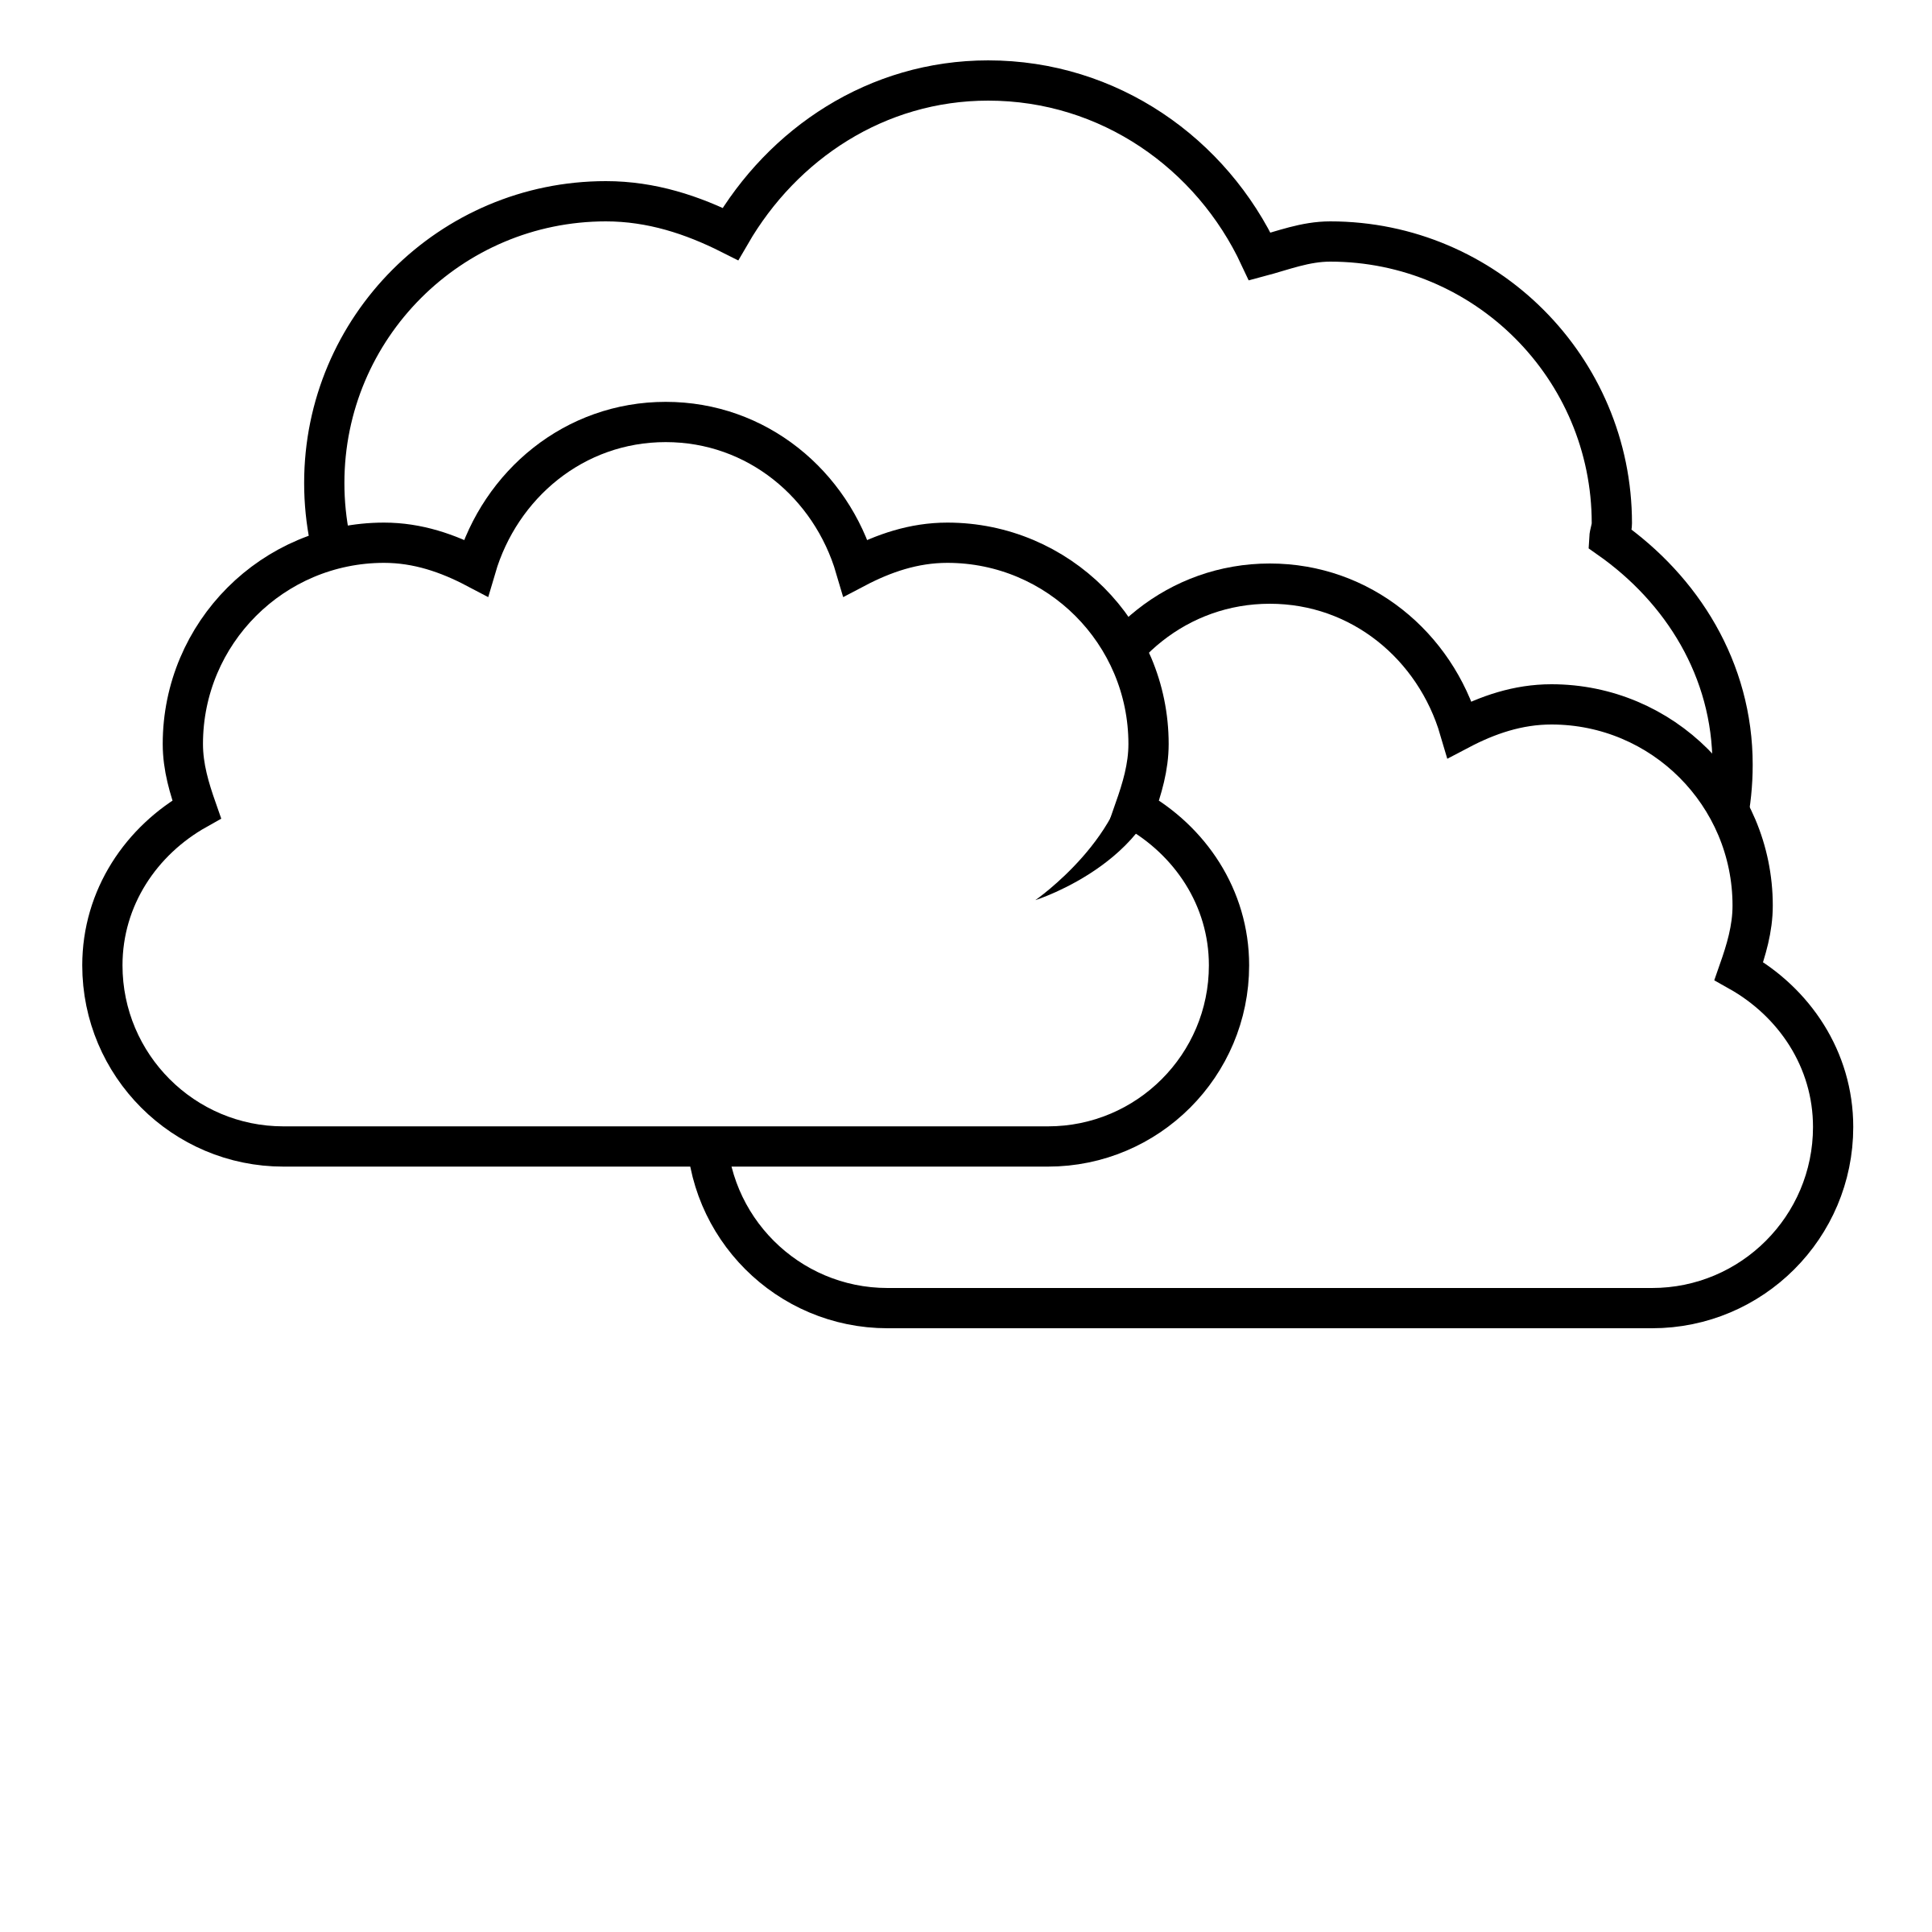 Cloudy drawing at getdrawings. Sunny clipart object